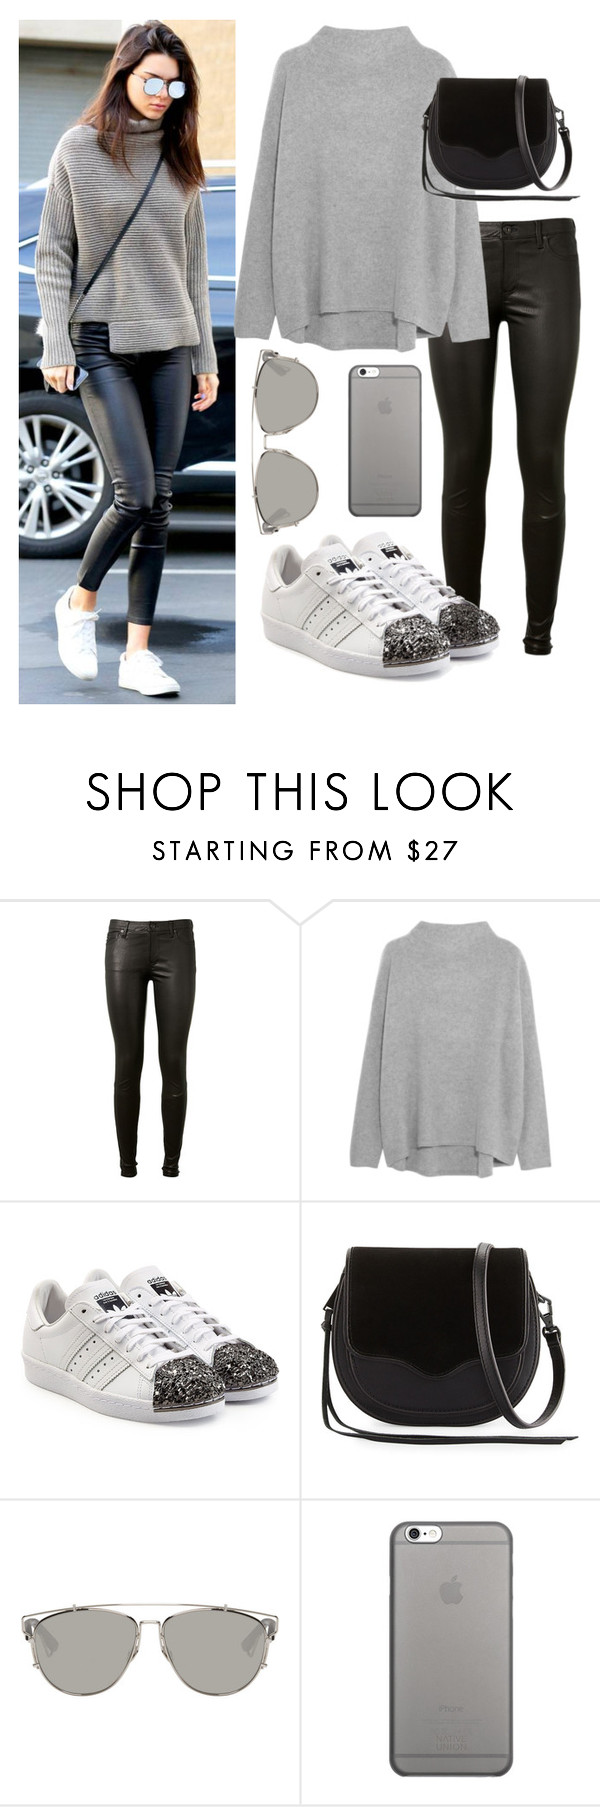 """Kendall Jenner"" by allex17 ❤ liked on Polyvore featuring AG Adriano Goldschmied, Vince, adidas Originals, Rebecca Minkoff, Christian Dior and Native Union"